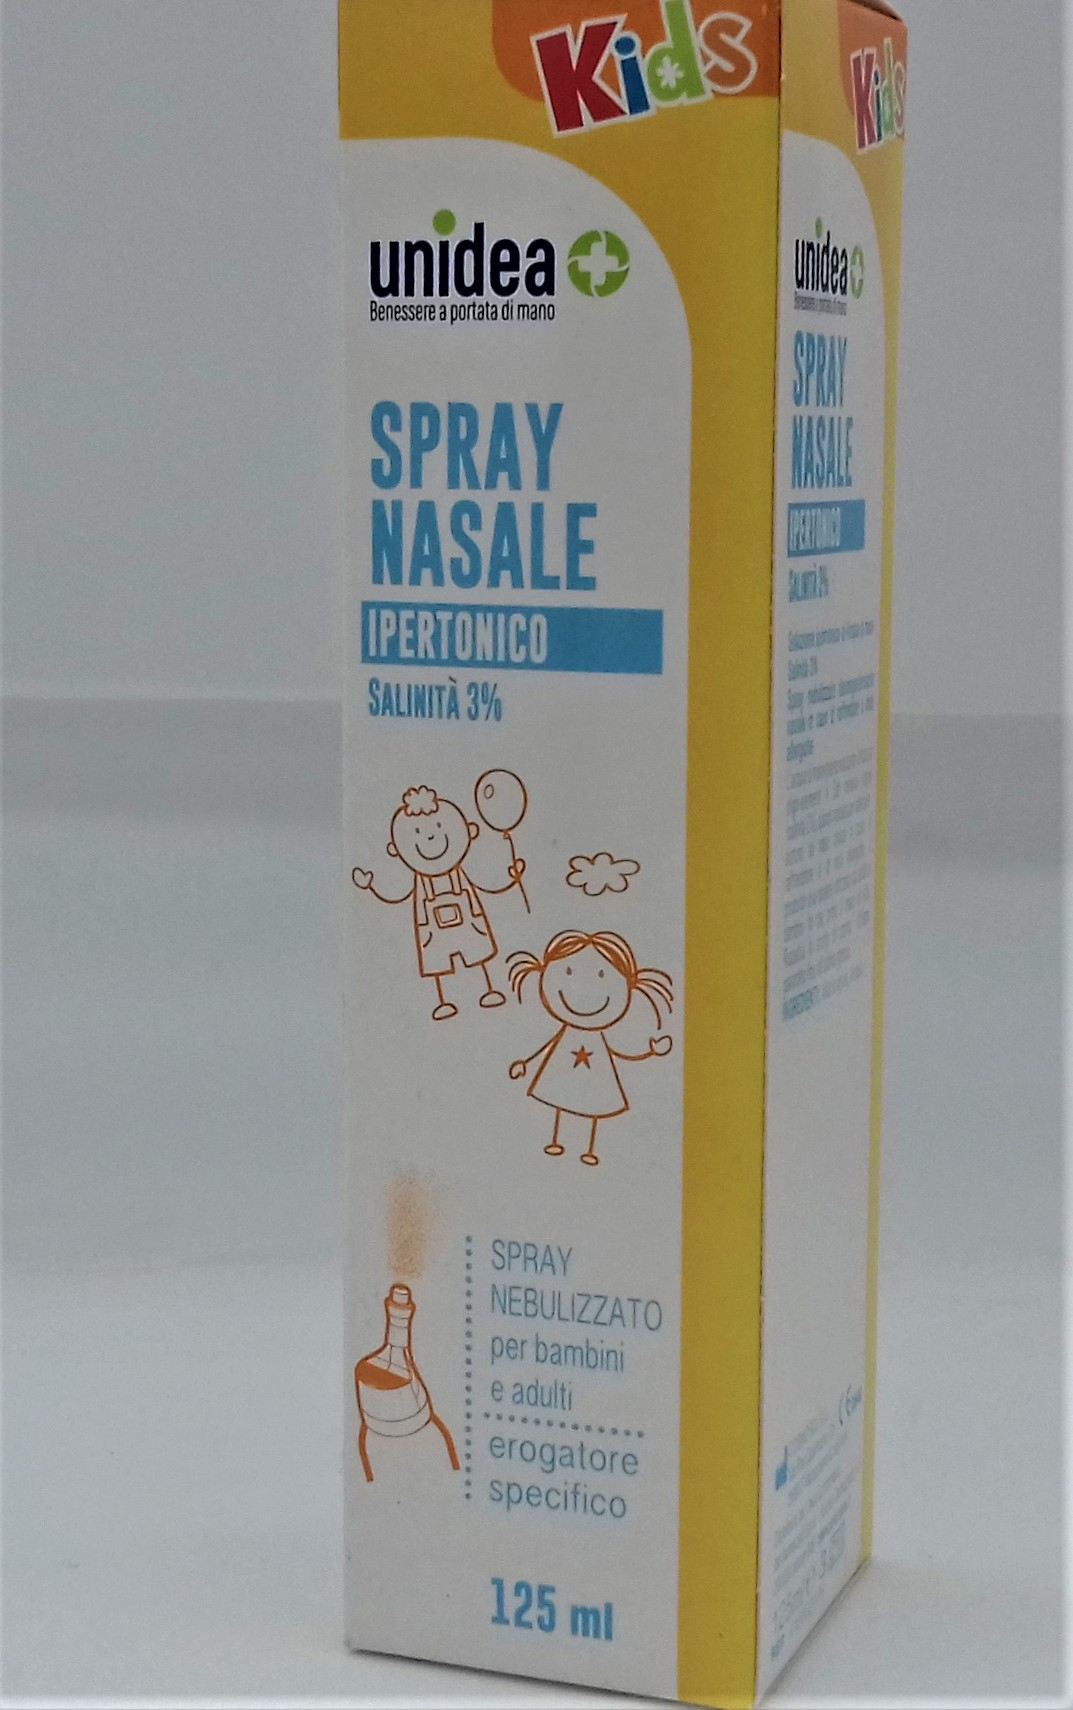 SPRAY NASALE IPERTONICO 125 ML